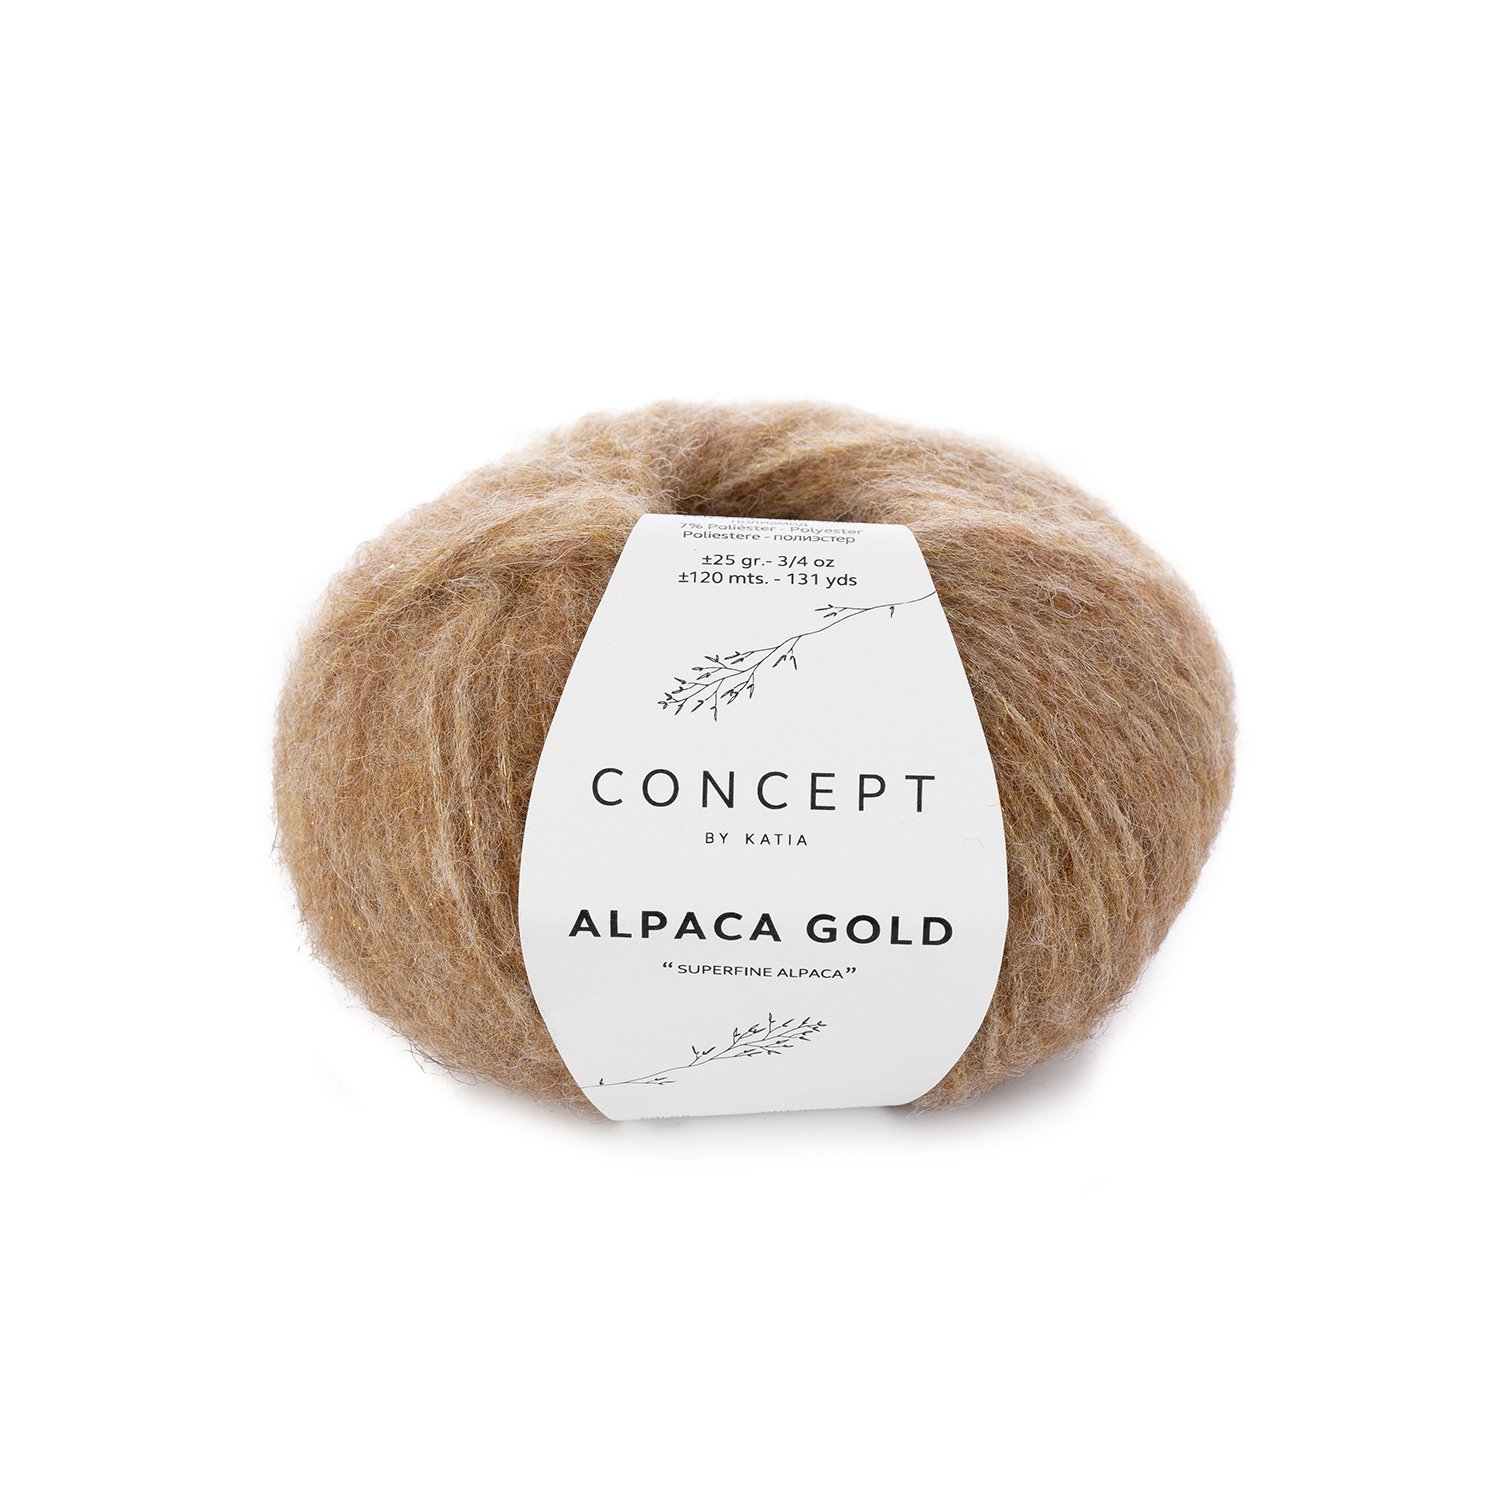 ALPACA GOLD - Autumn / Winter - yarns | Katia.com